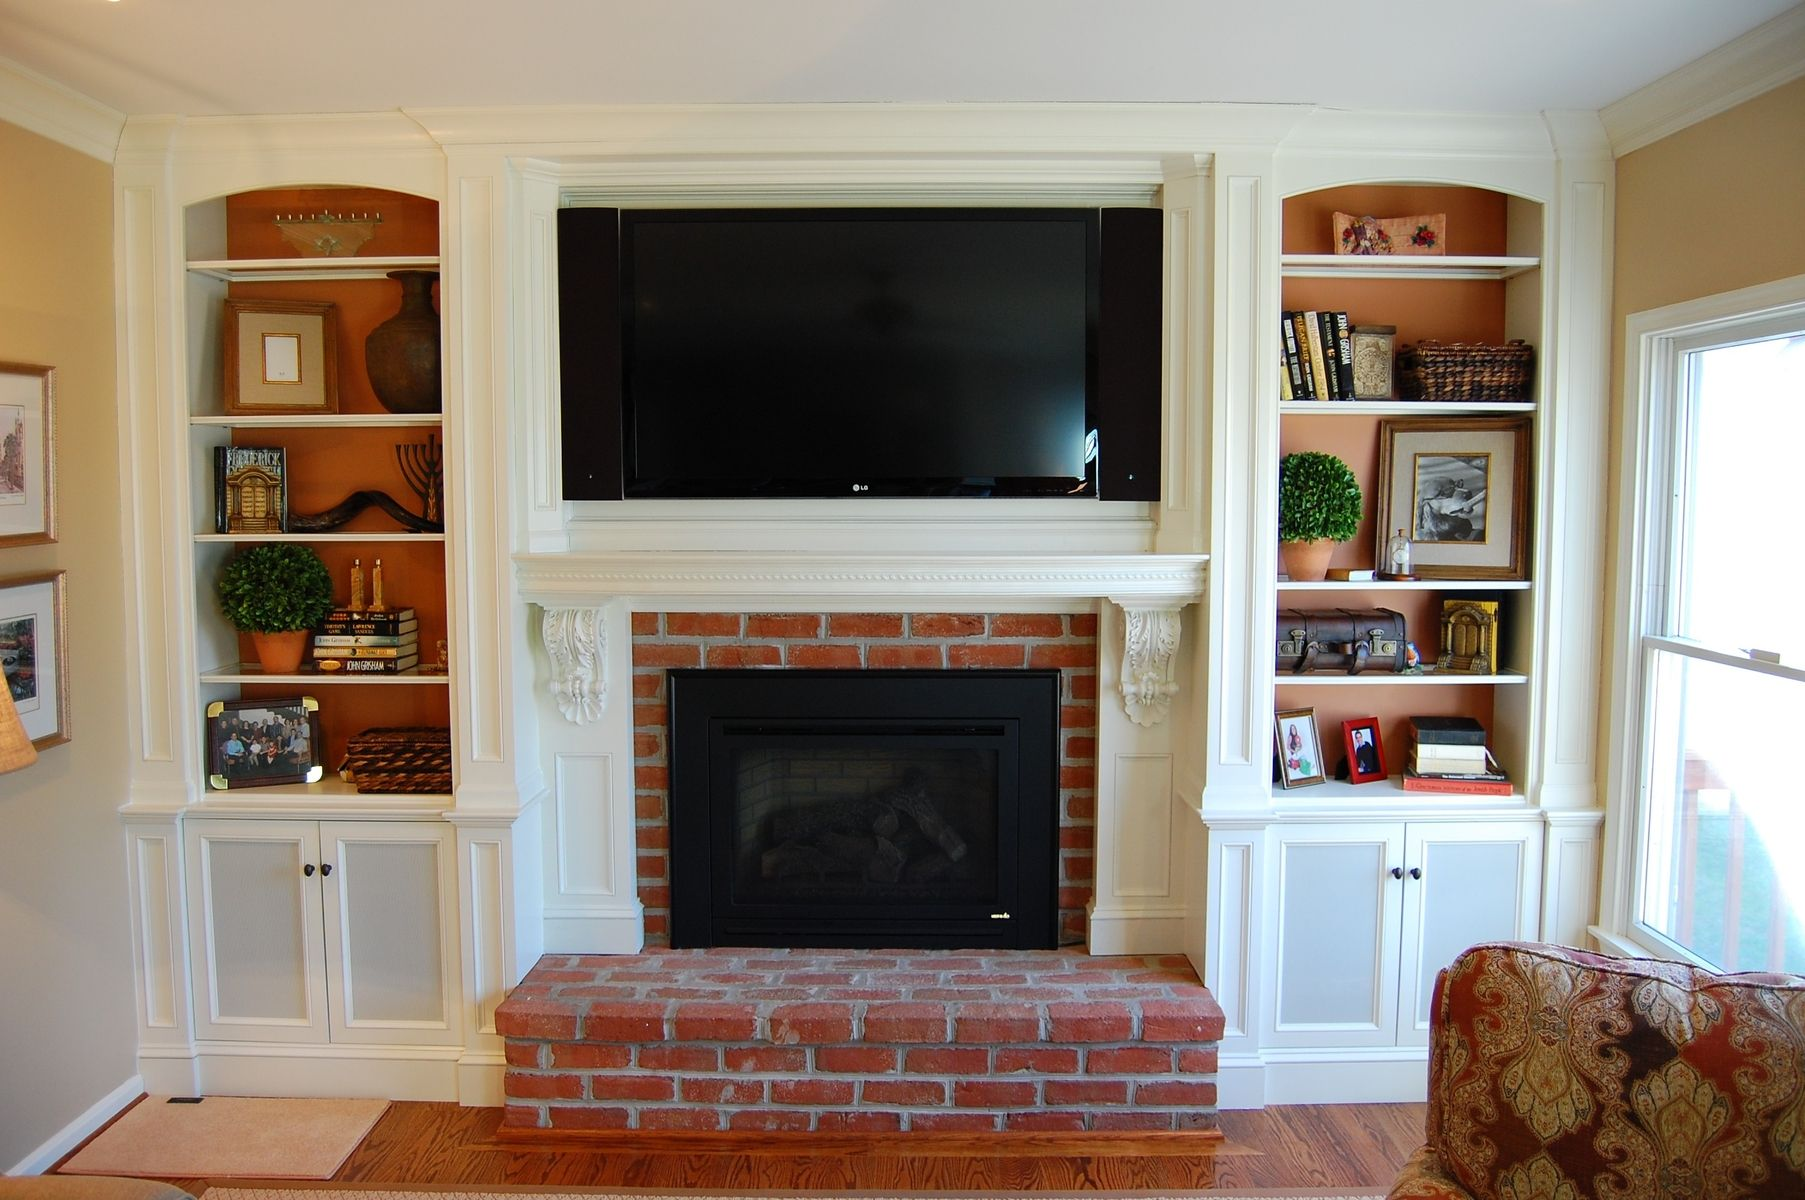 custom over mantel tv cabinetry by sjk woodcraft design